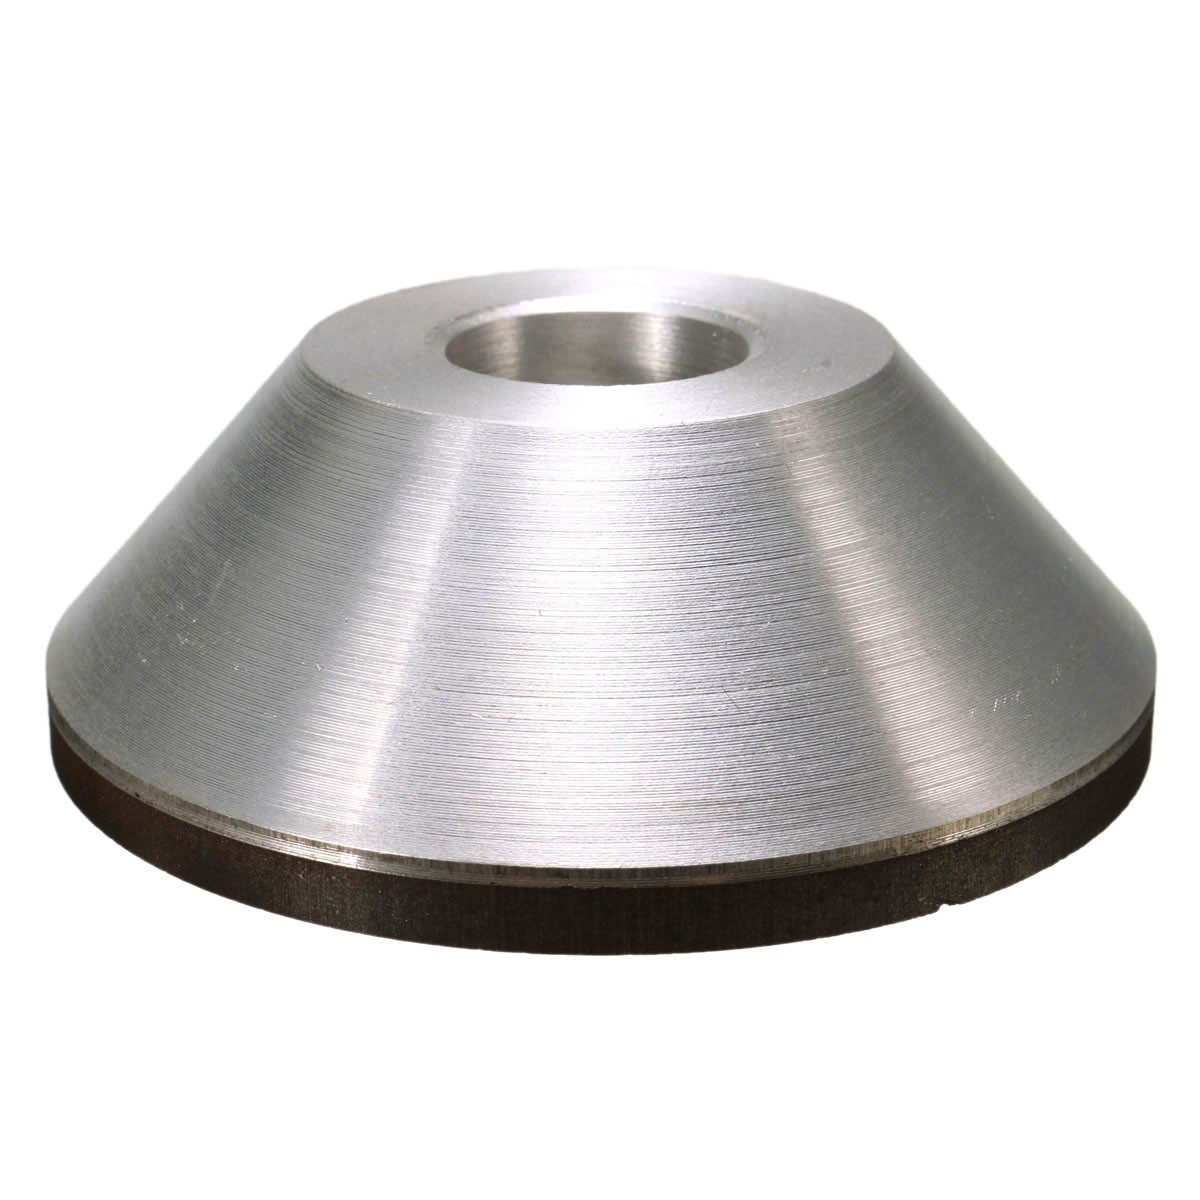 Best Promotion 1pc 75mm Diamond Grinding Wheel Cup 180 Grit Cutter